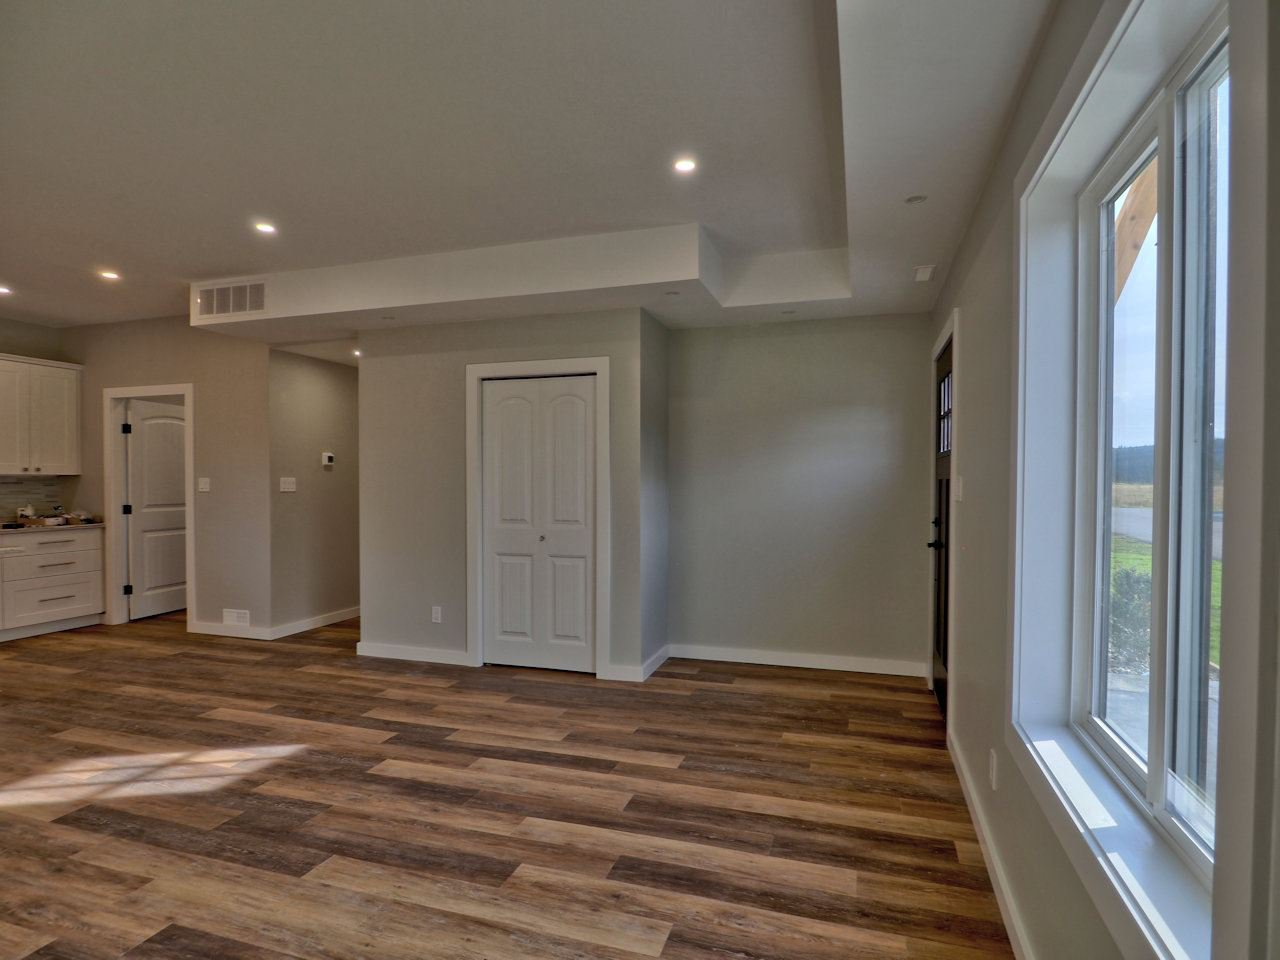 Photo 15: Photos: 11 110 FOREST RIDGE Road in 100 Mile House: 100 Mile House - Town House for sale (100 Mile House (Zone 10))  : MLS®# R2510445